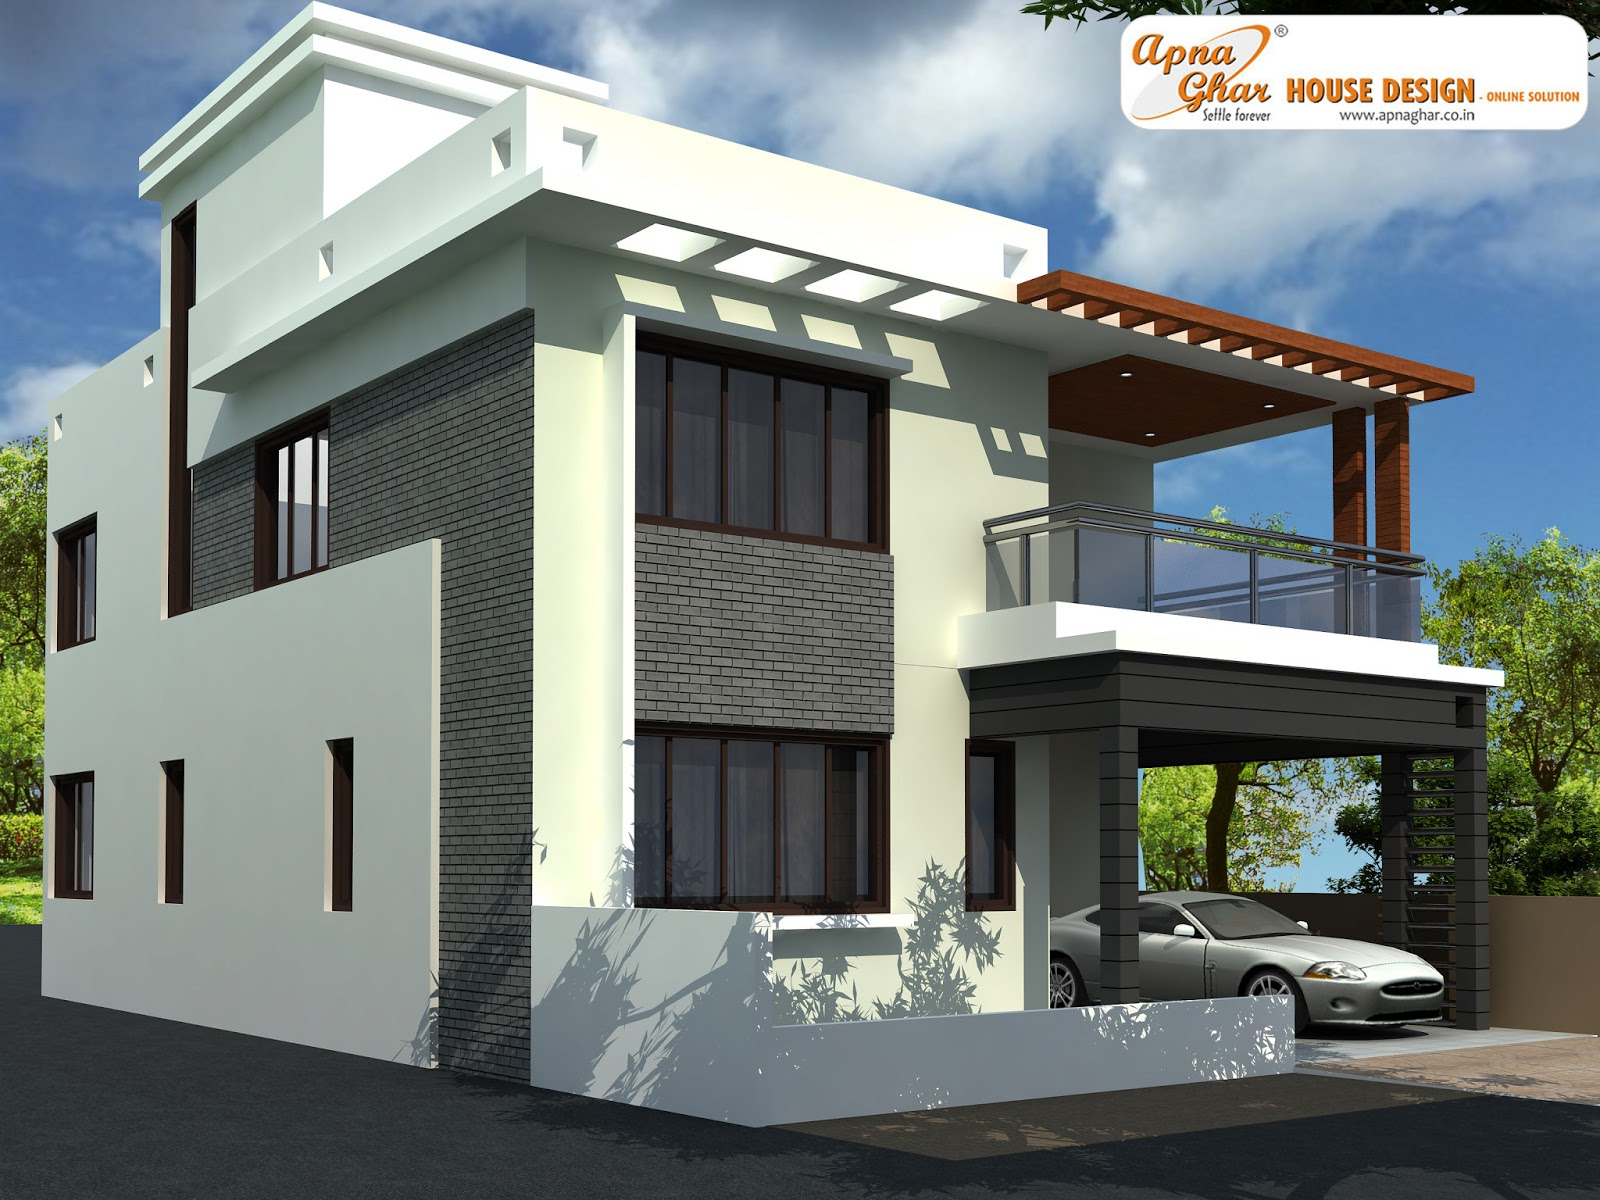 Indian duplex house front elevation joy studio design gallery best design - Duplex home elevation design photos ...